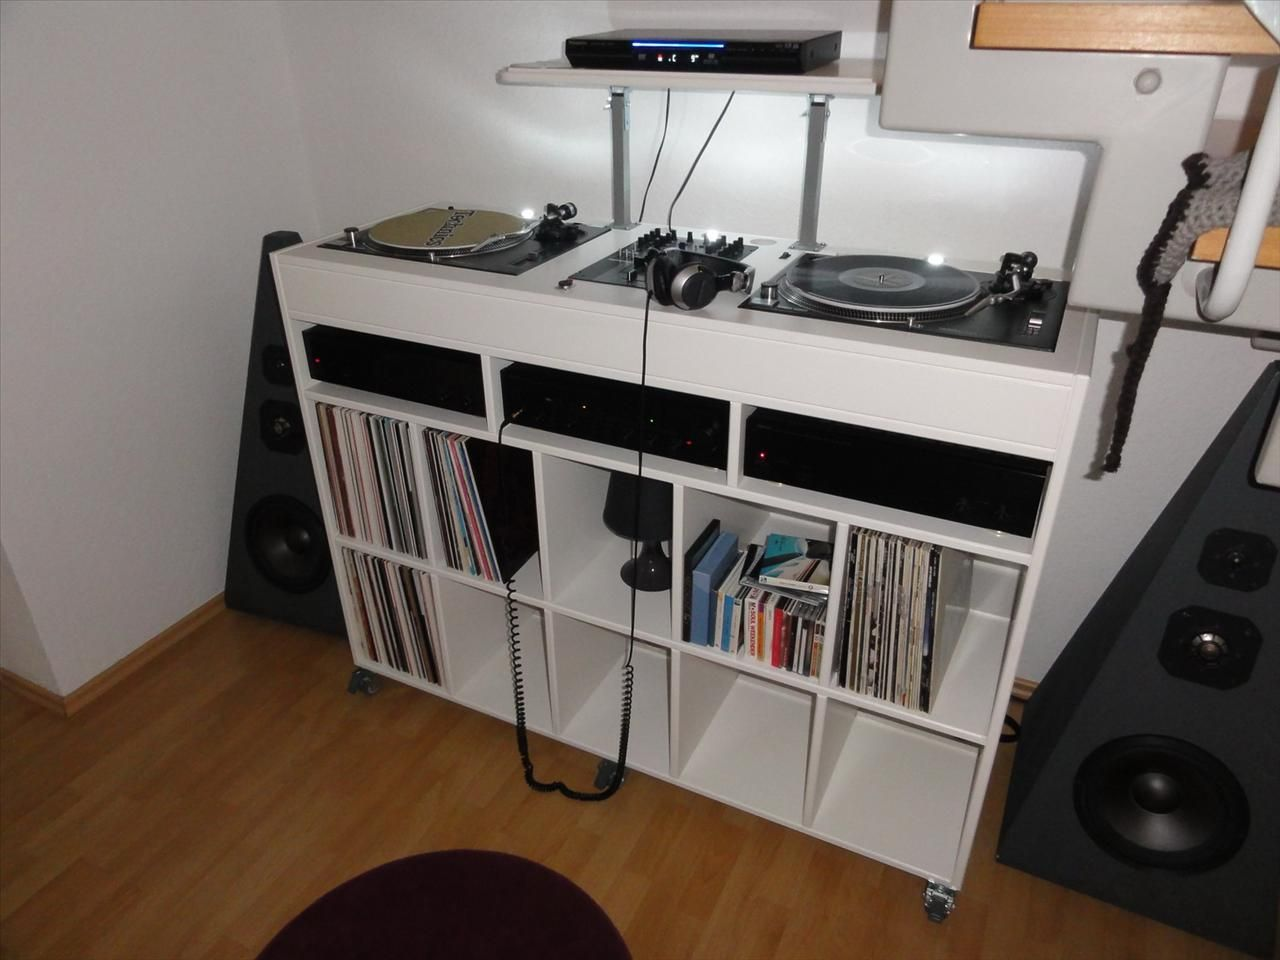 Dj Furniture With The Wheels For The Deejay In 2019 Dj